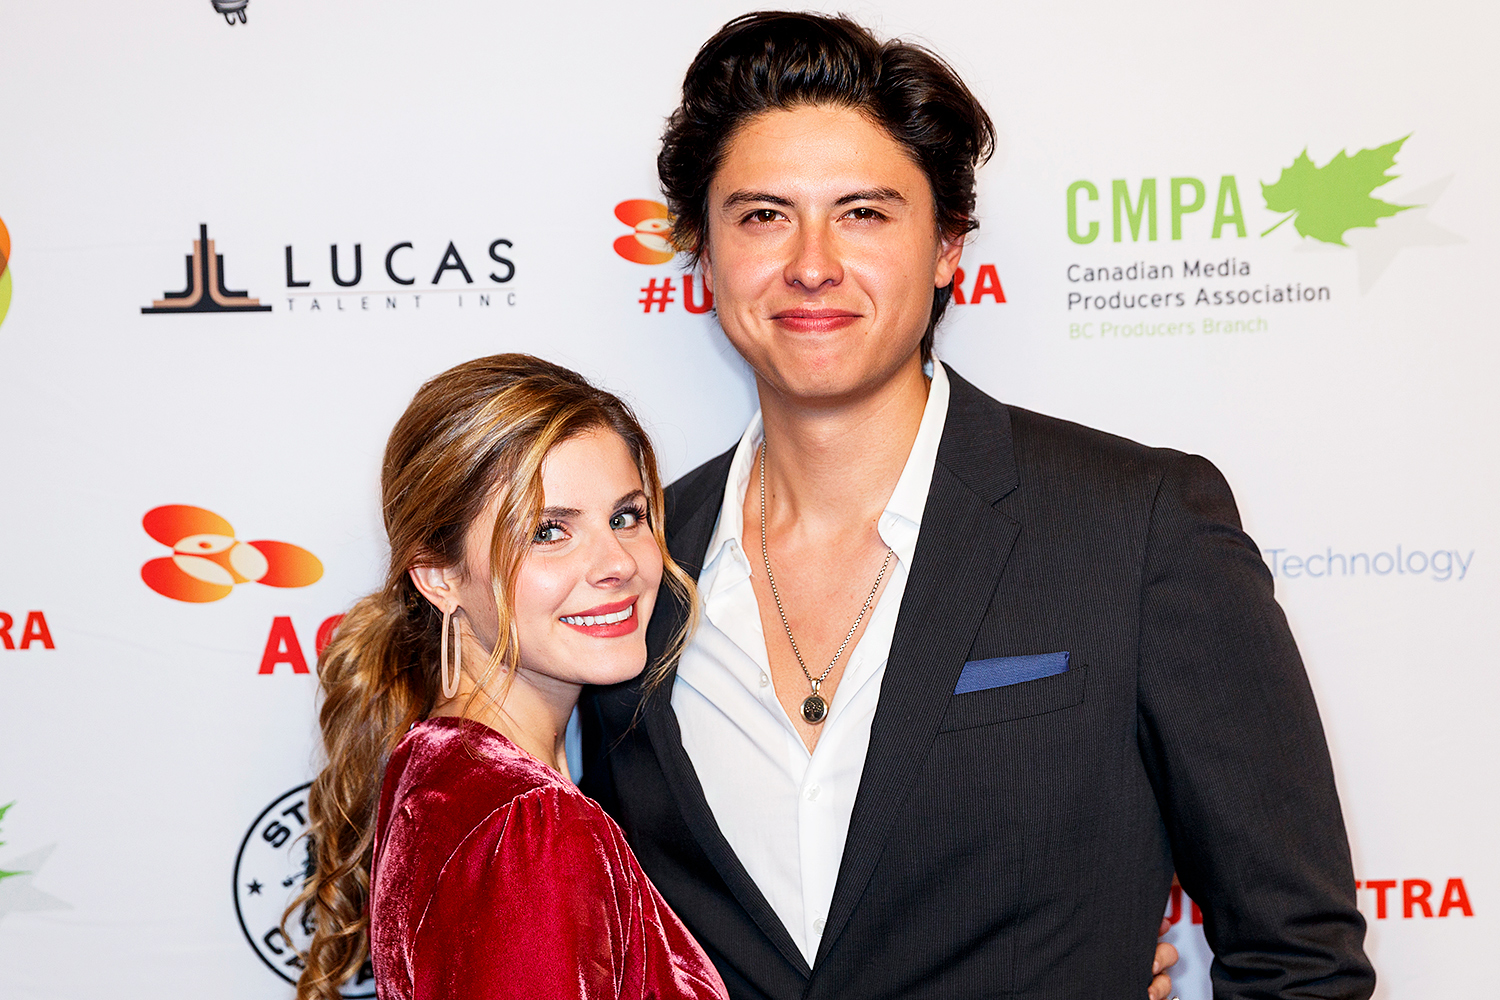 Jinjara Mitchell and Jordan Connor attend the 8th Annual UBCP/ACTRA Awards at Vancouver Playhouse on November 23, 2019 in Vancouver, Canada.